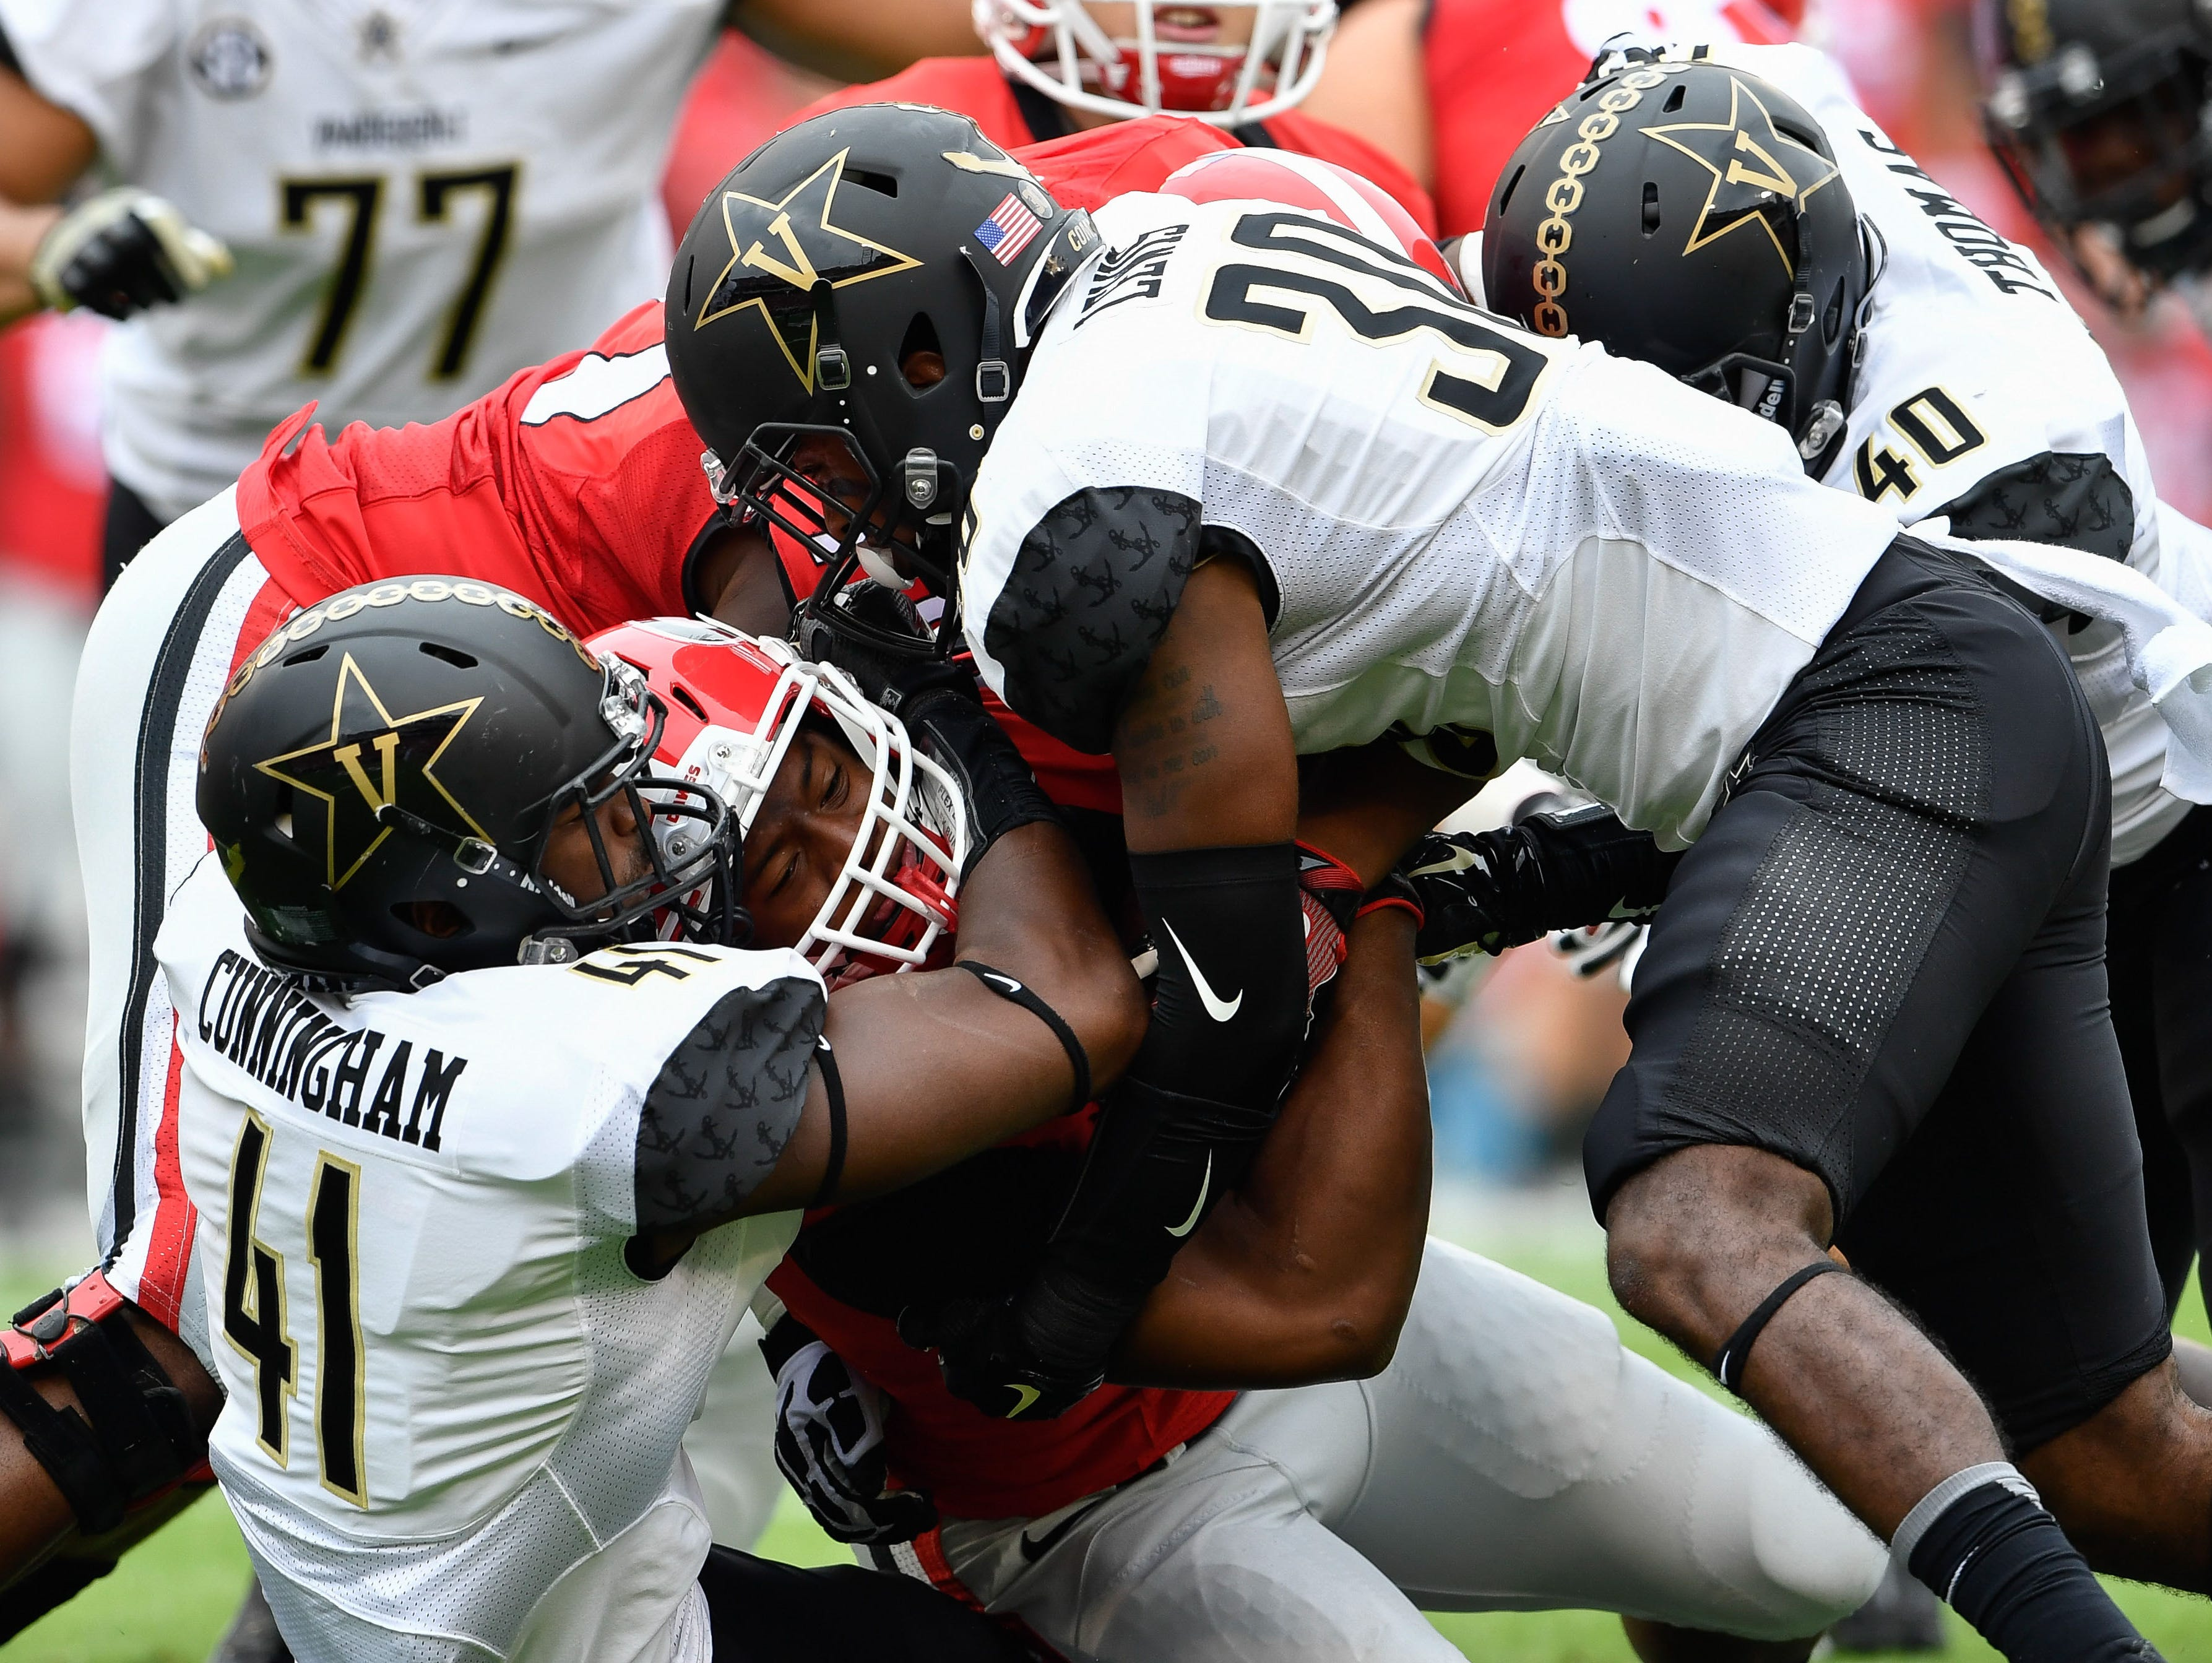 Georgia running back Nick Chubb (27) is tackled by Vanderbilt linebacker Zach Cunningham (41) and defensive back Bryce Lewis (30) during the first quarter last season.